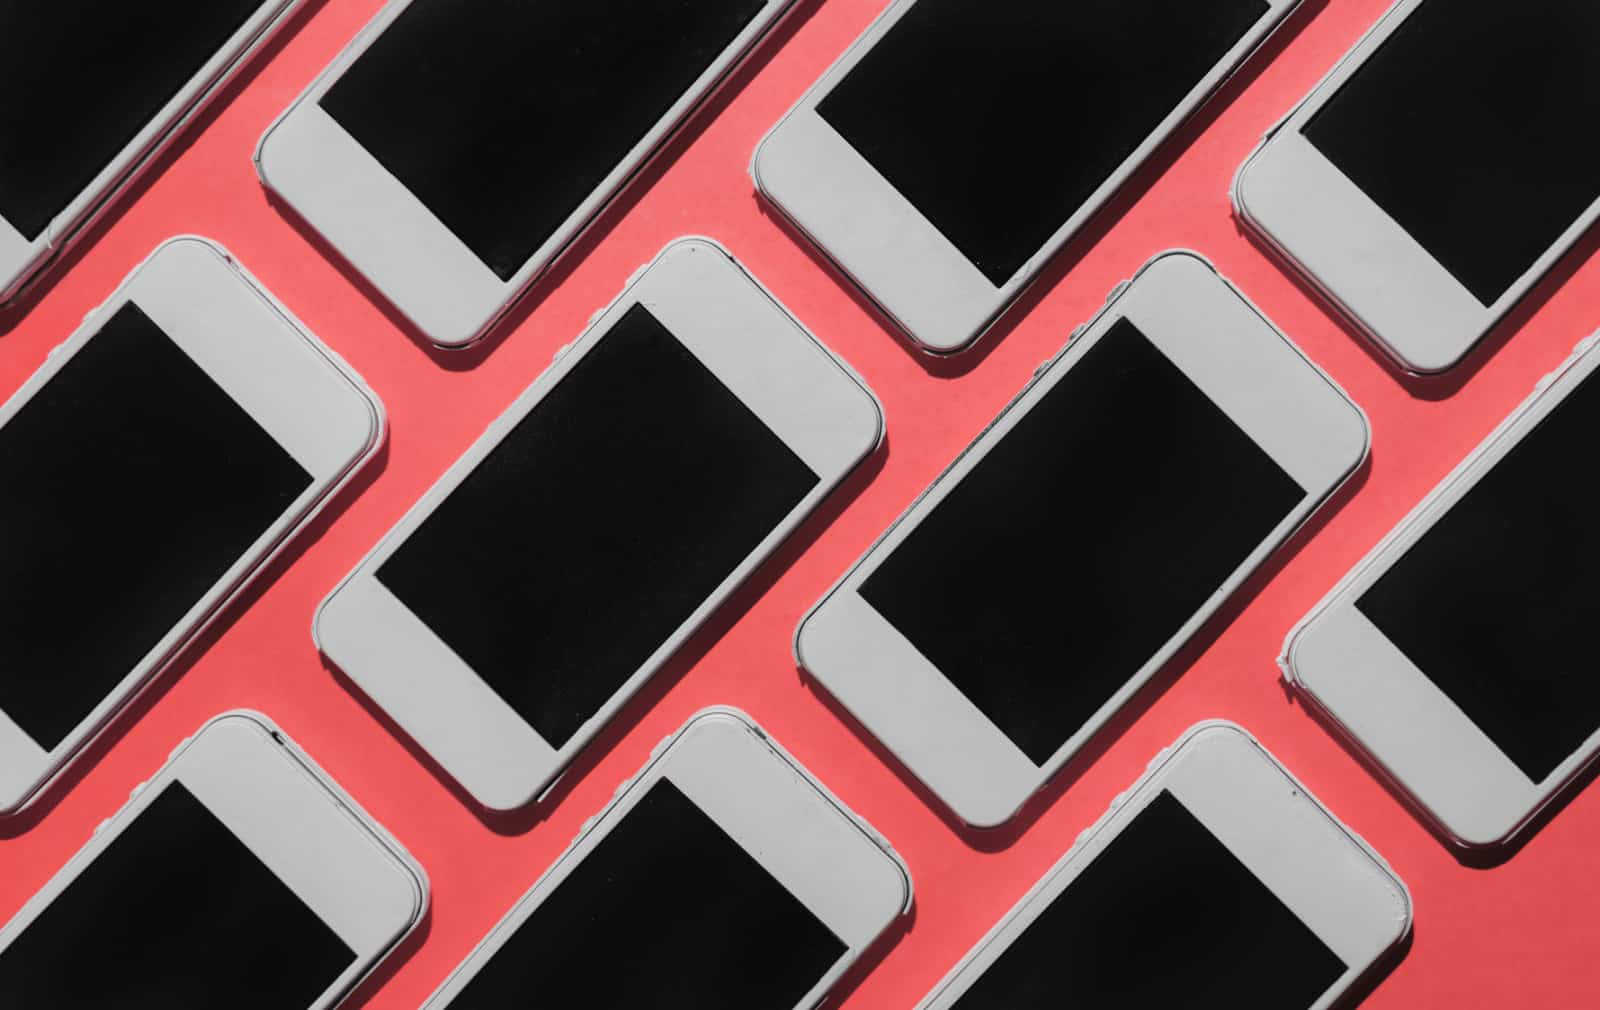 Mobile phones lined up on pink background